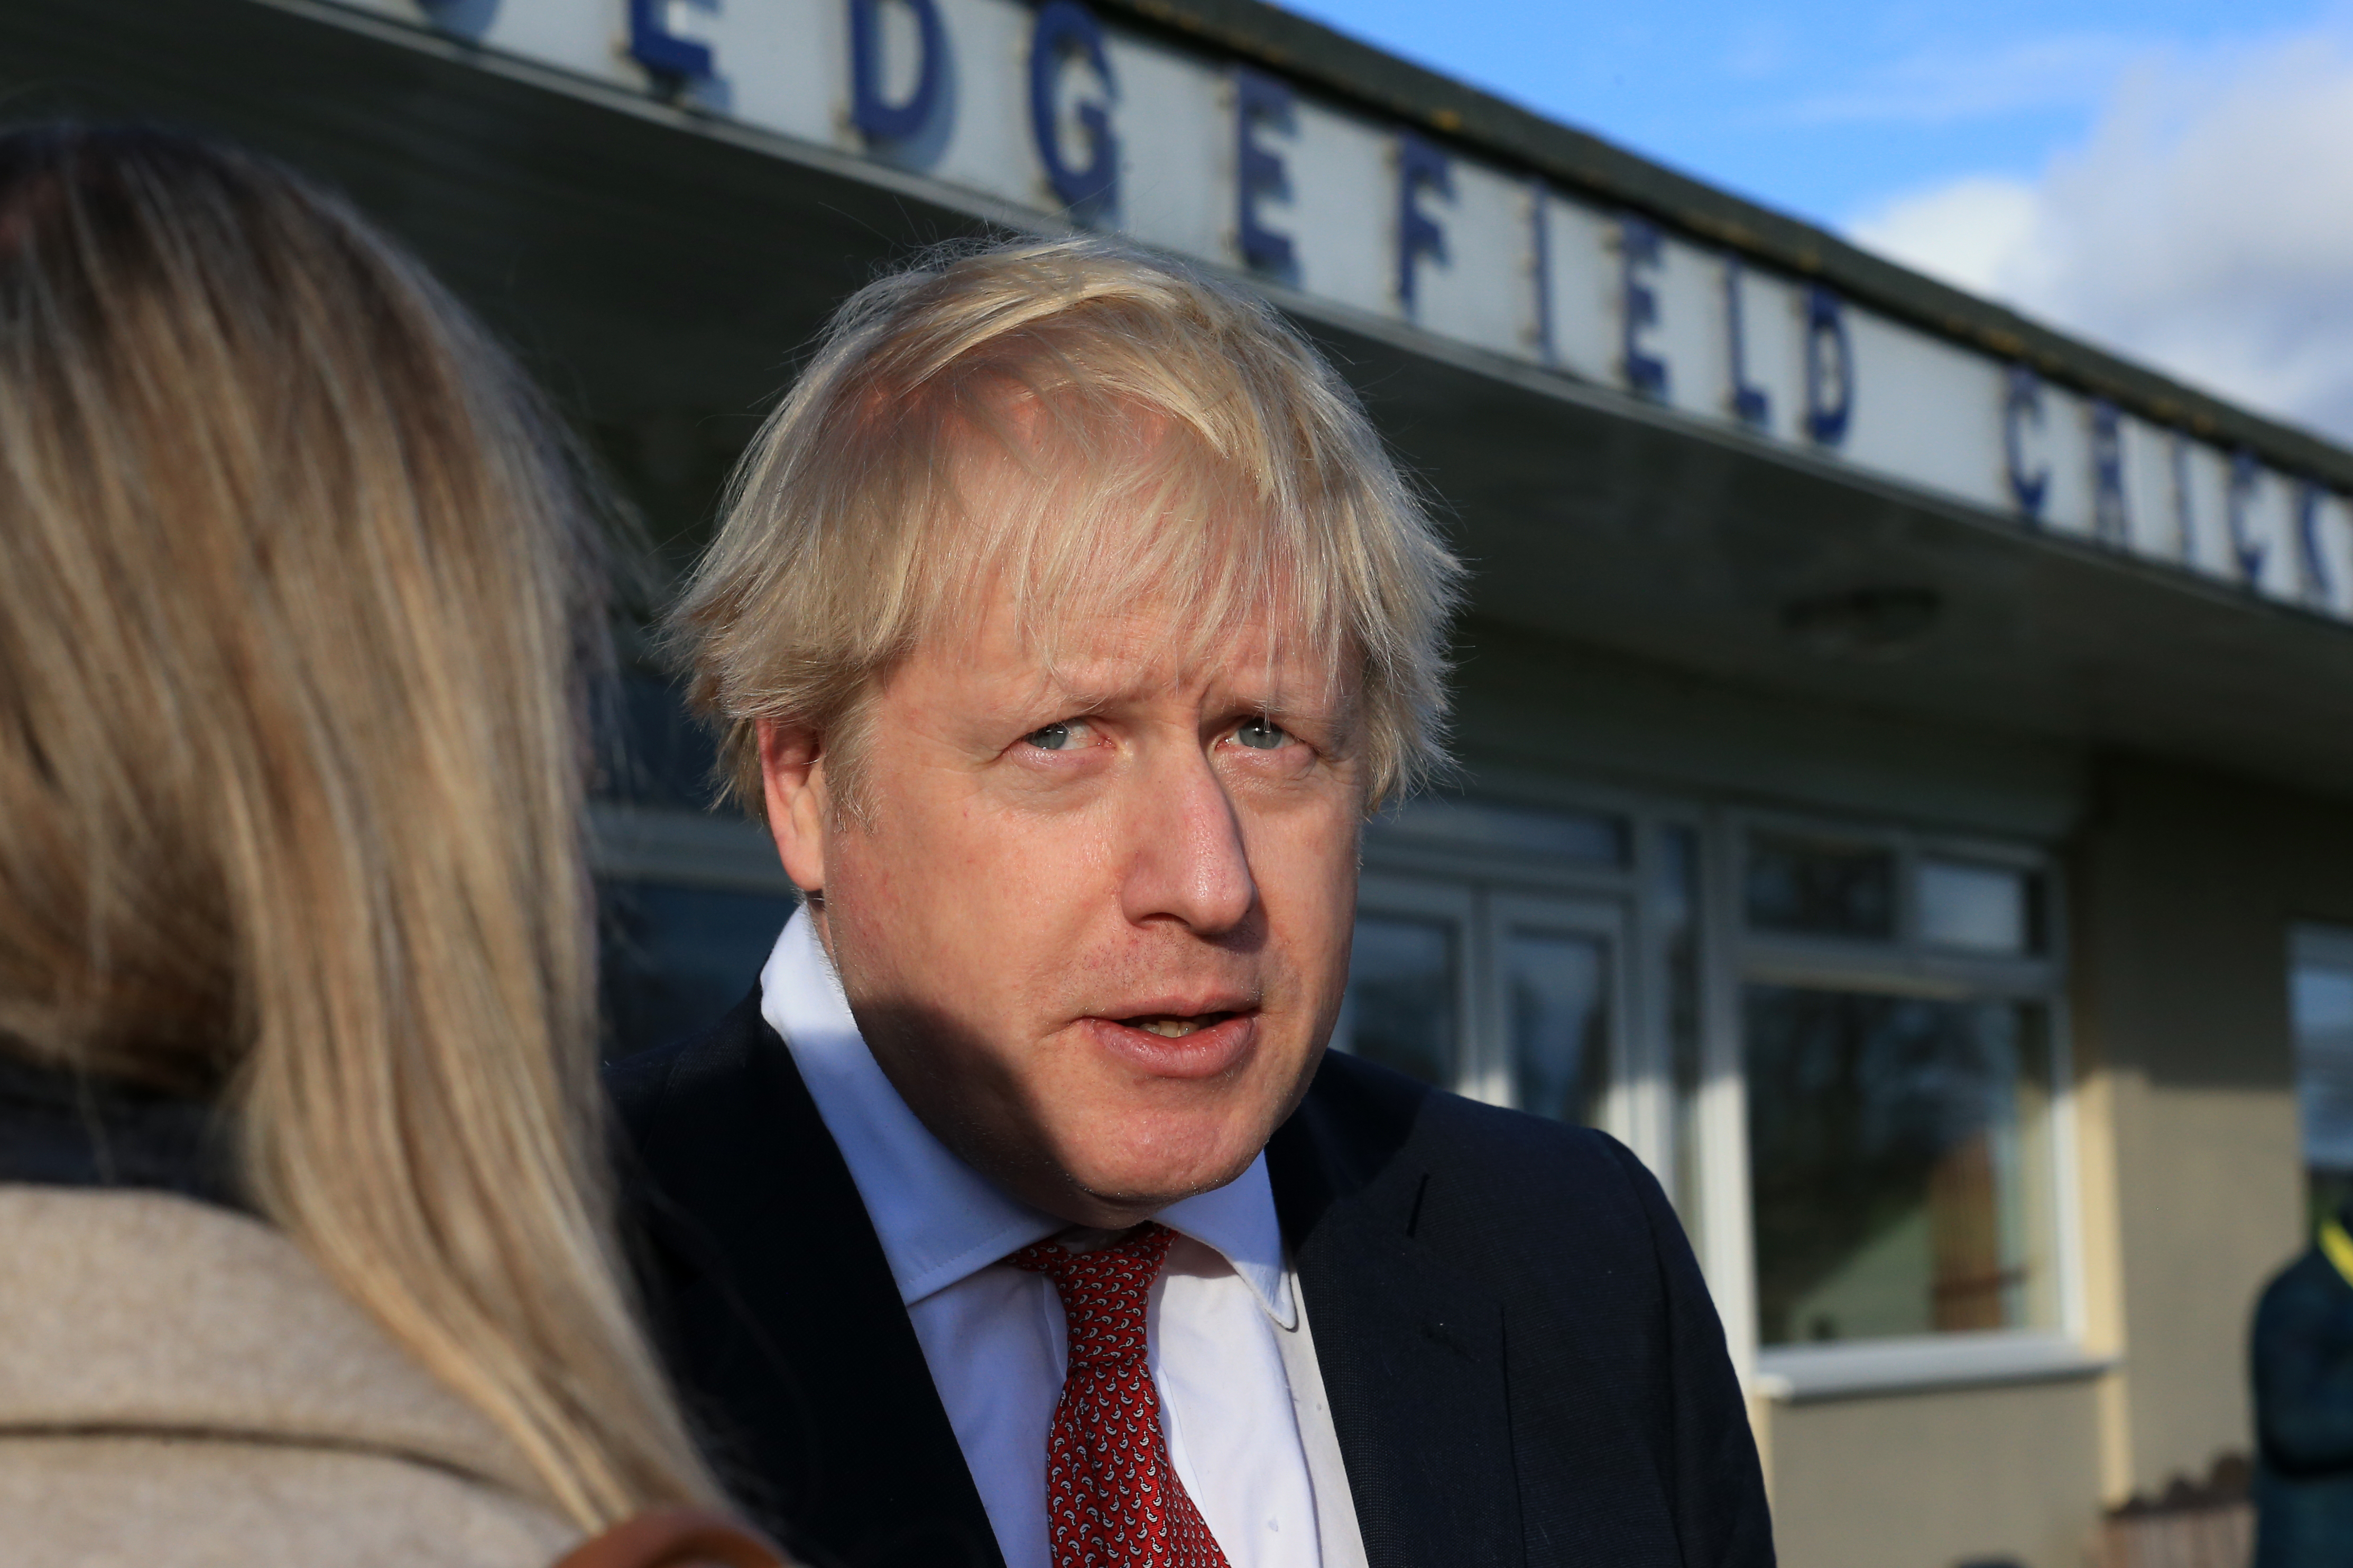 Prime Minister Boris Johnson during a visit to see newly elected Conservative party MP for Sedgefield, Paul Howell during a visit to Sedgefield Cricket Club in County Durham.